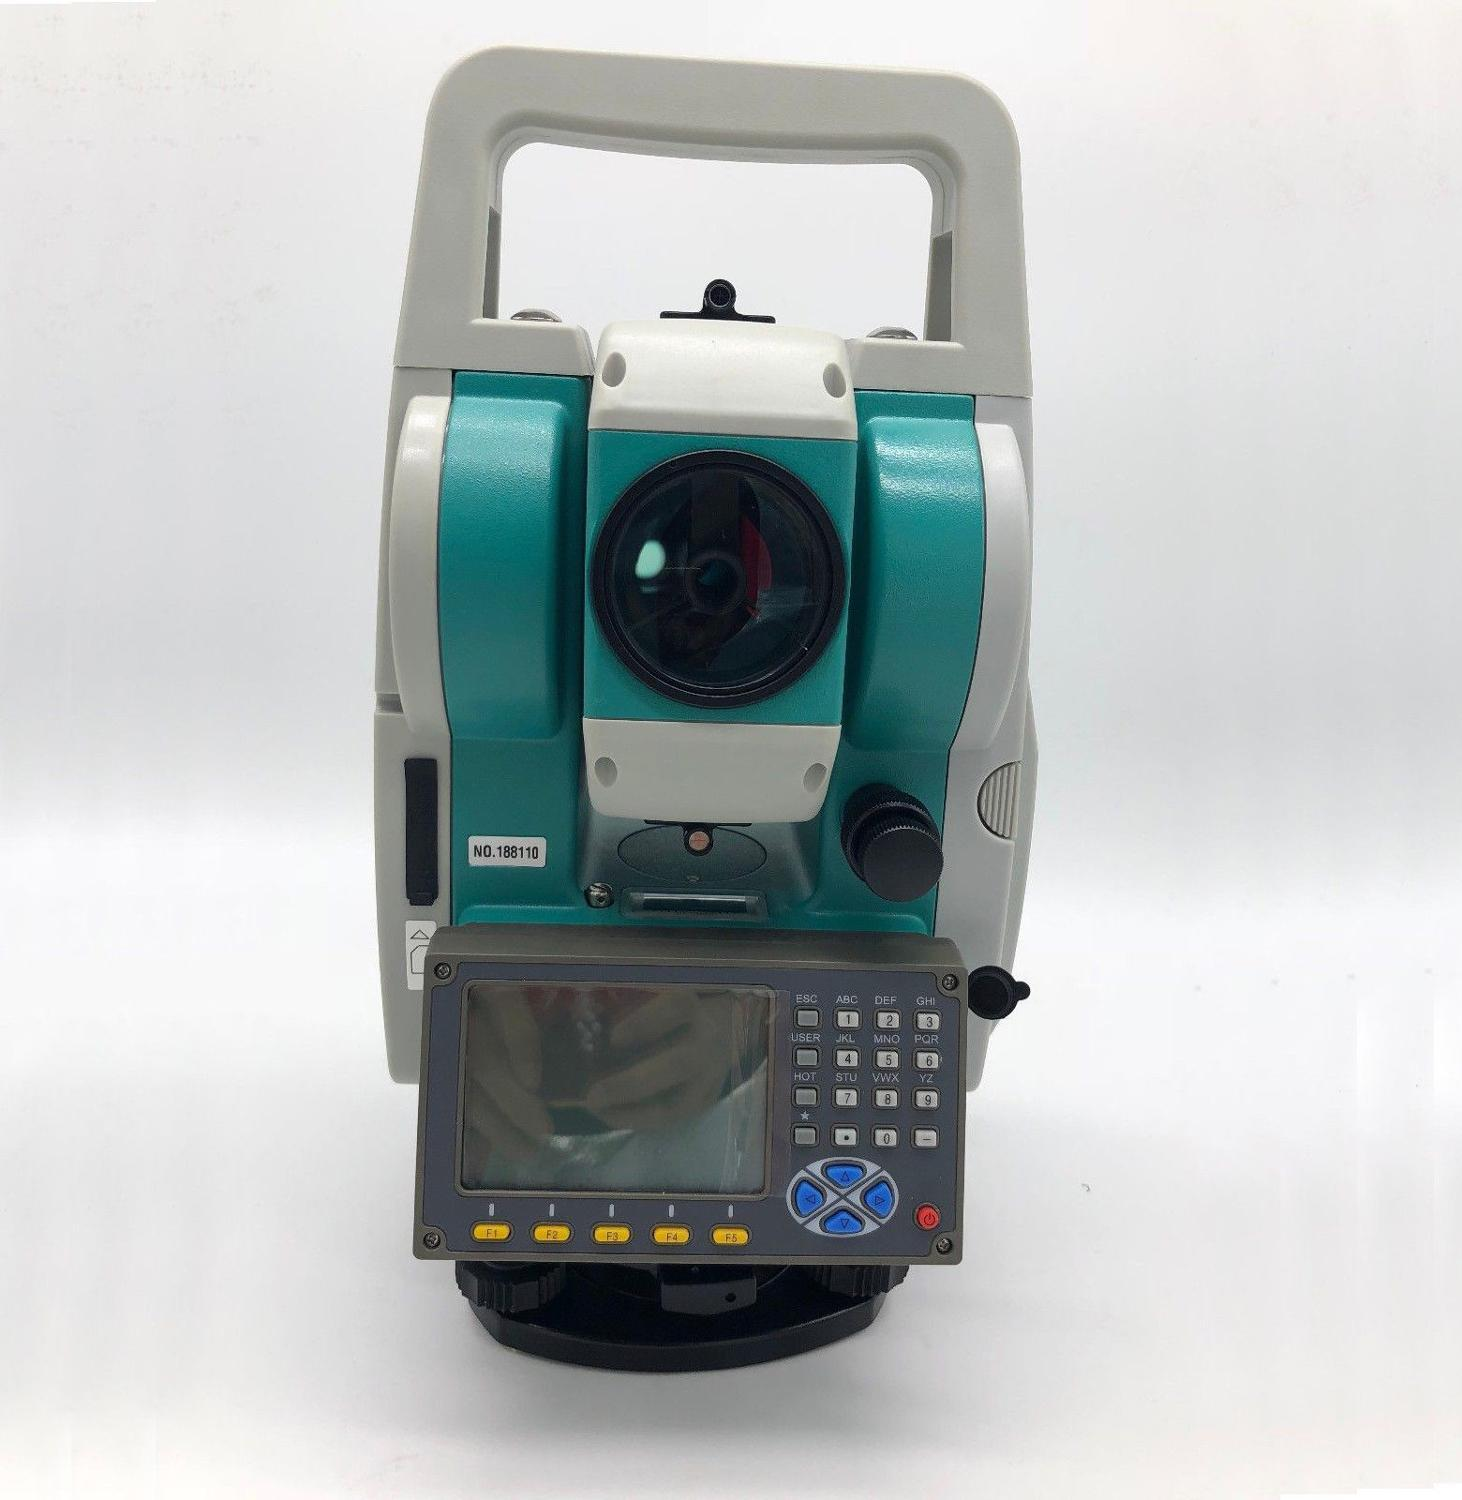 NEW Mato reflectorless 500m total station MTS 1202R-in Theodolites from Tools on Aliexpress.com   Alibaba GroupNEW Mato reflectorless 500m total station MTS 1202R-in Theodolites from Tools on Aliexpress.com   Alibaba Group